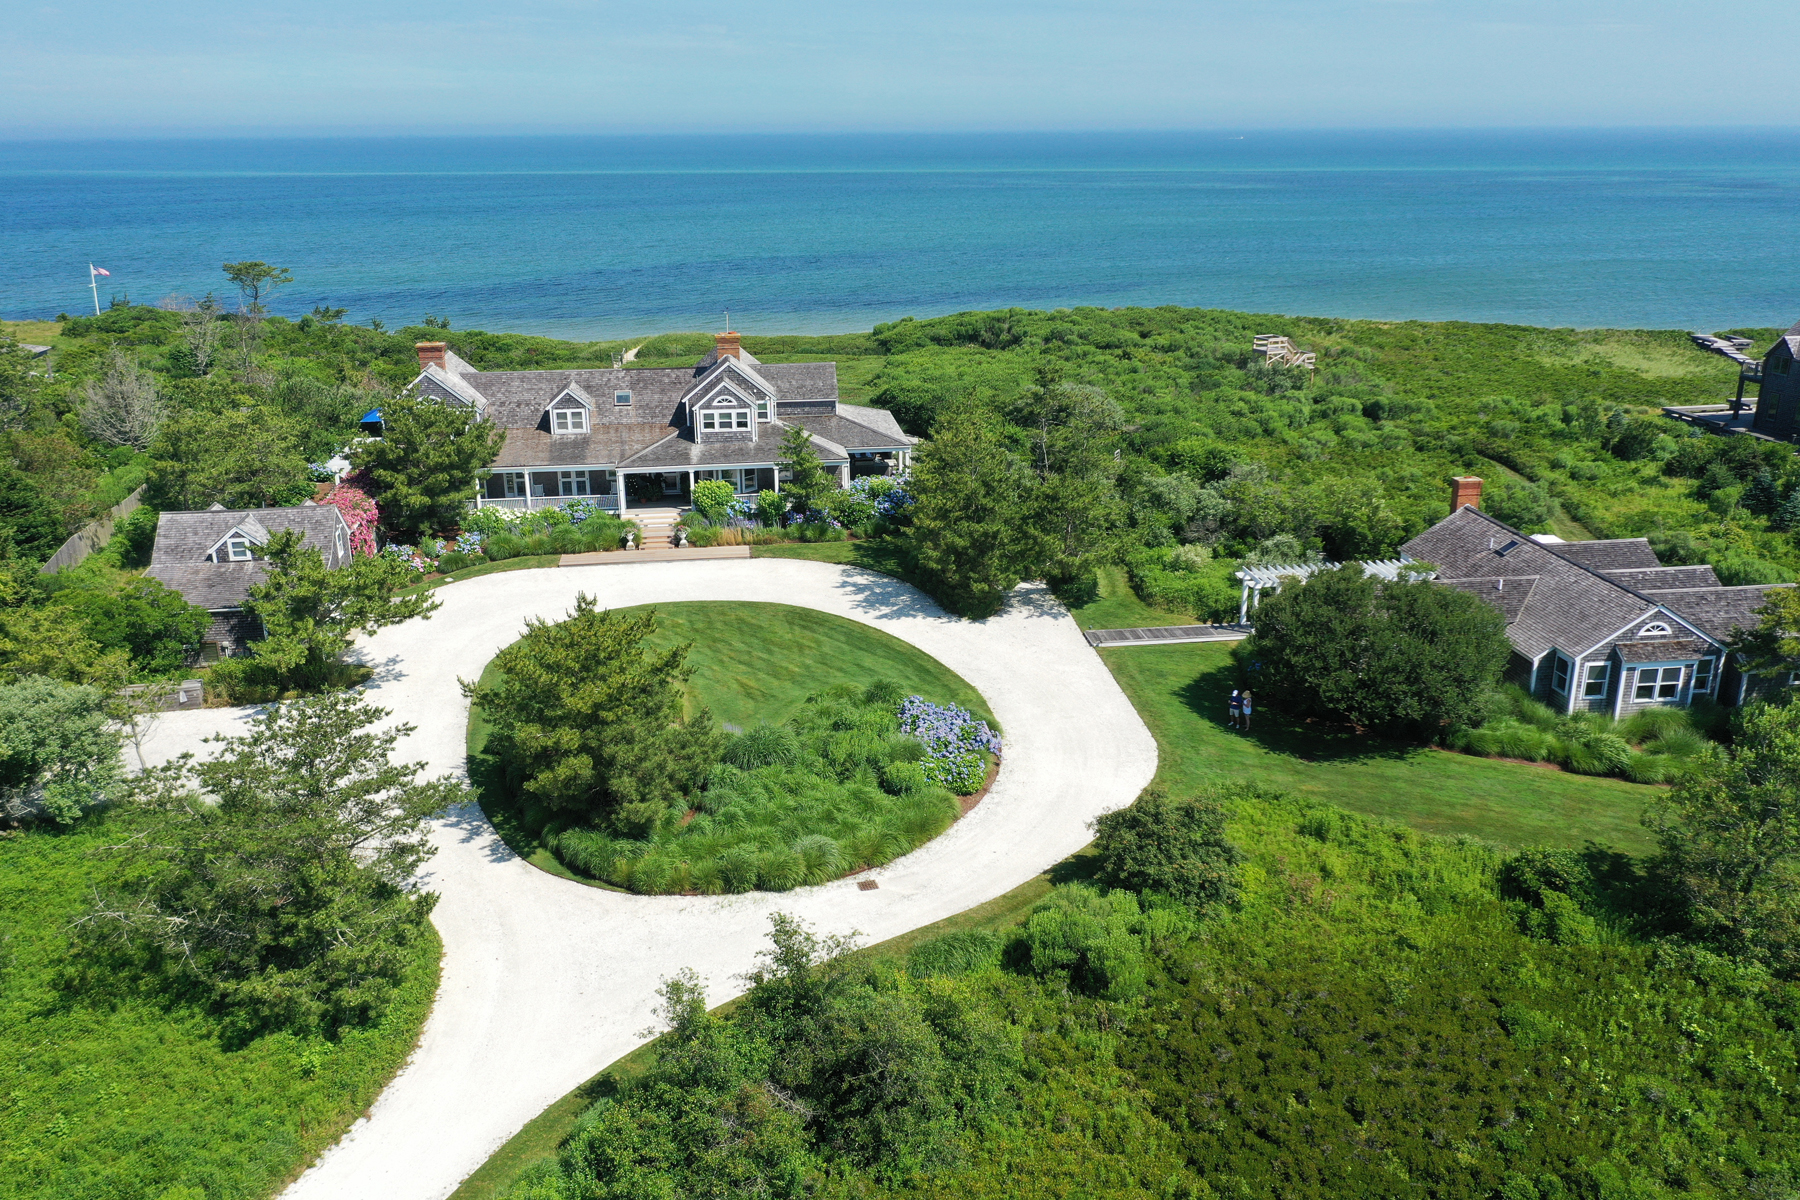 Single Family Homes for Active at 7 BEDROOM NORTH SHORE BEACHFRONT COMPOUND 119 Eel Point Road 119 R Eel Point Road Nantucket, Massachusetts 02554 United States